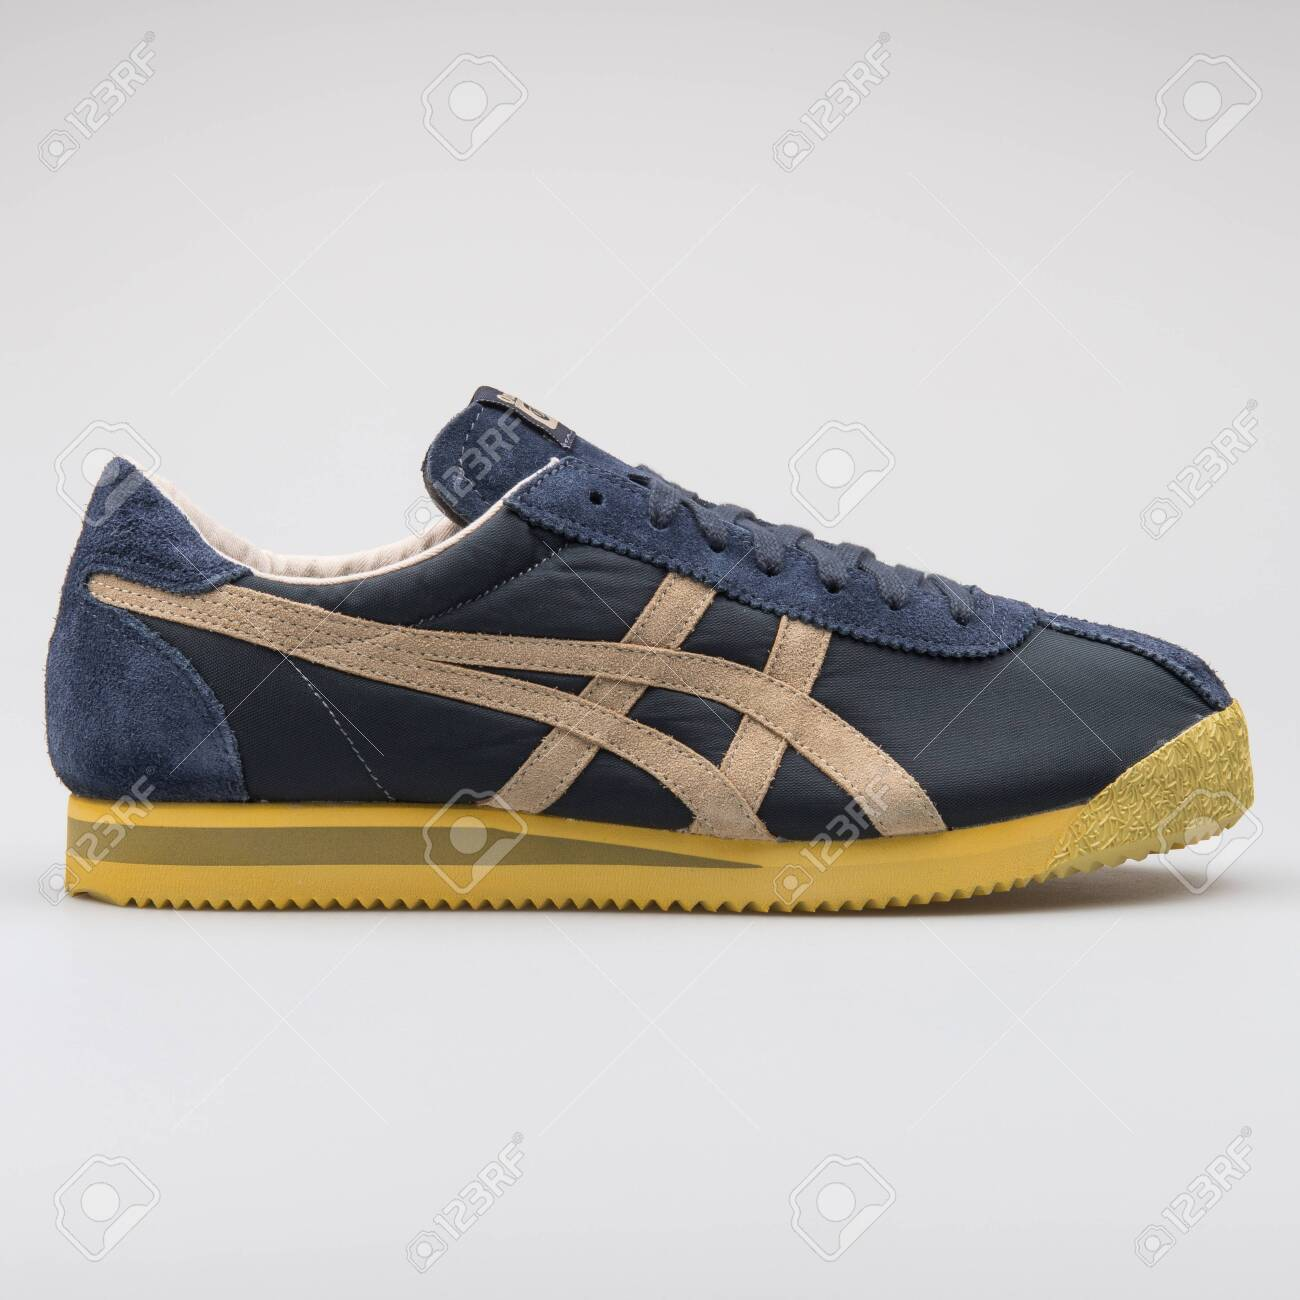 wholesale dealer 04d1b e279e VIENNA, AUSTRIA - AUGUST 7, 2017: Onitsuka Tiger Corsair VIN..